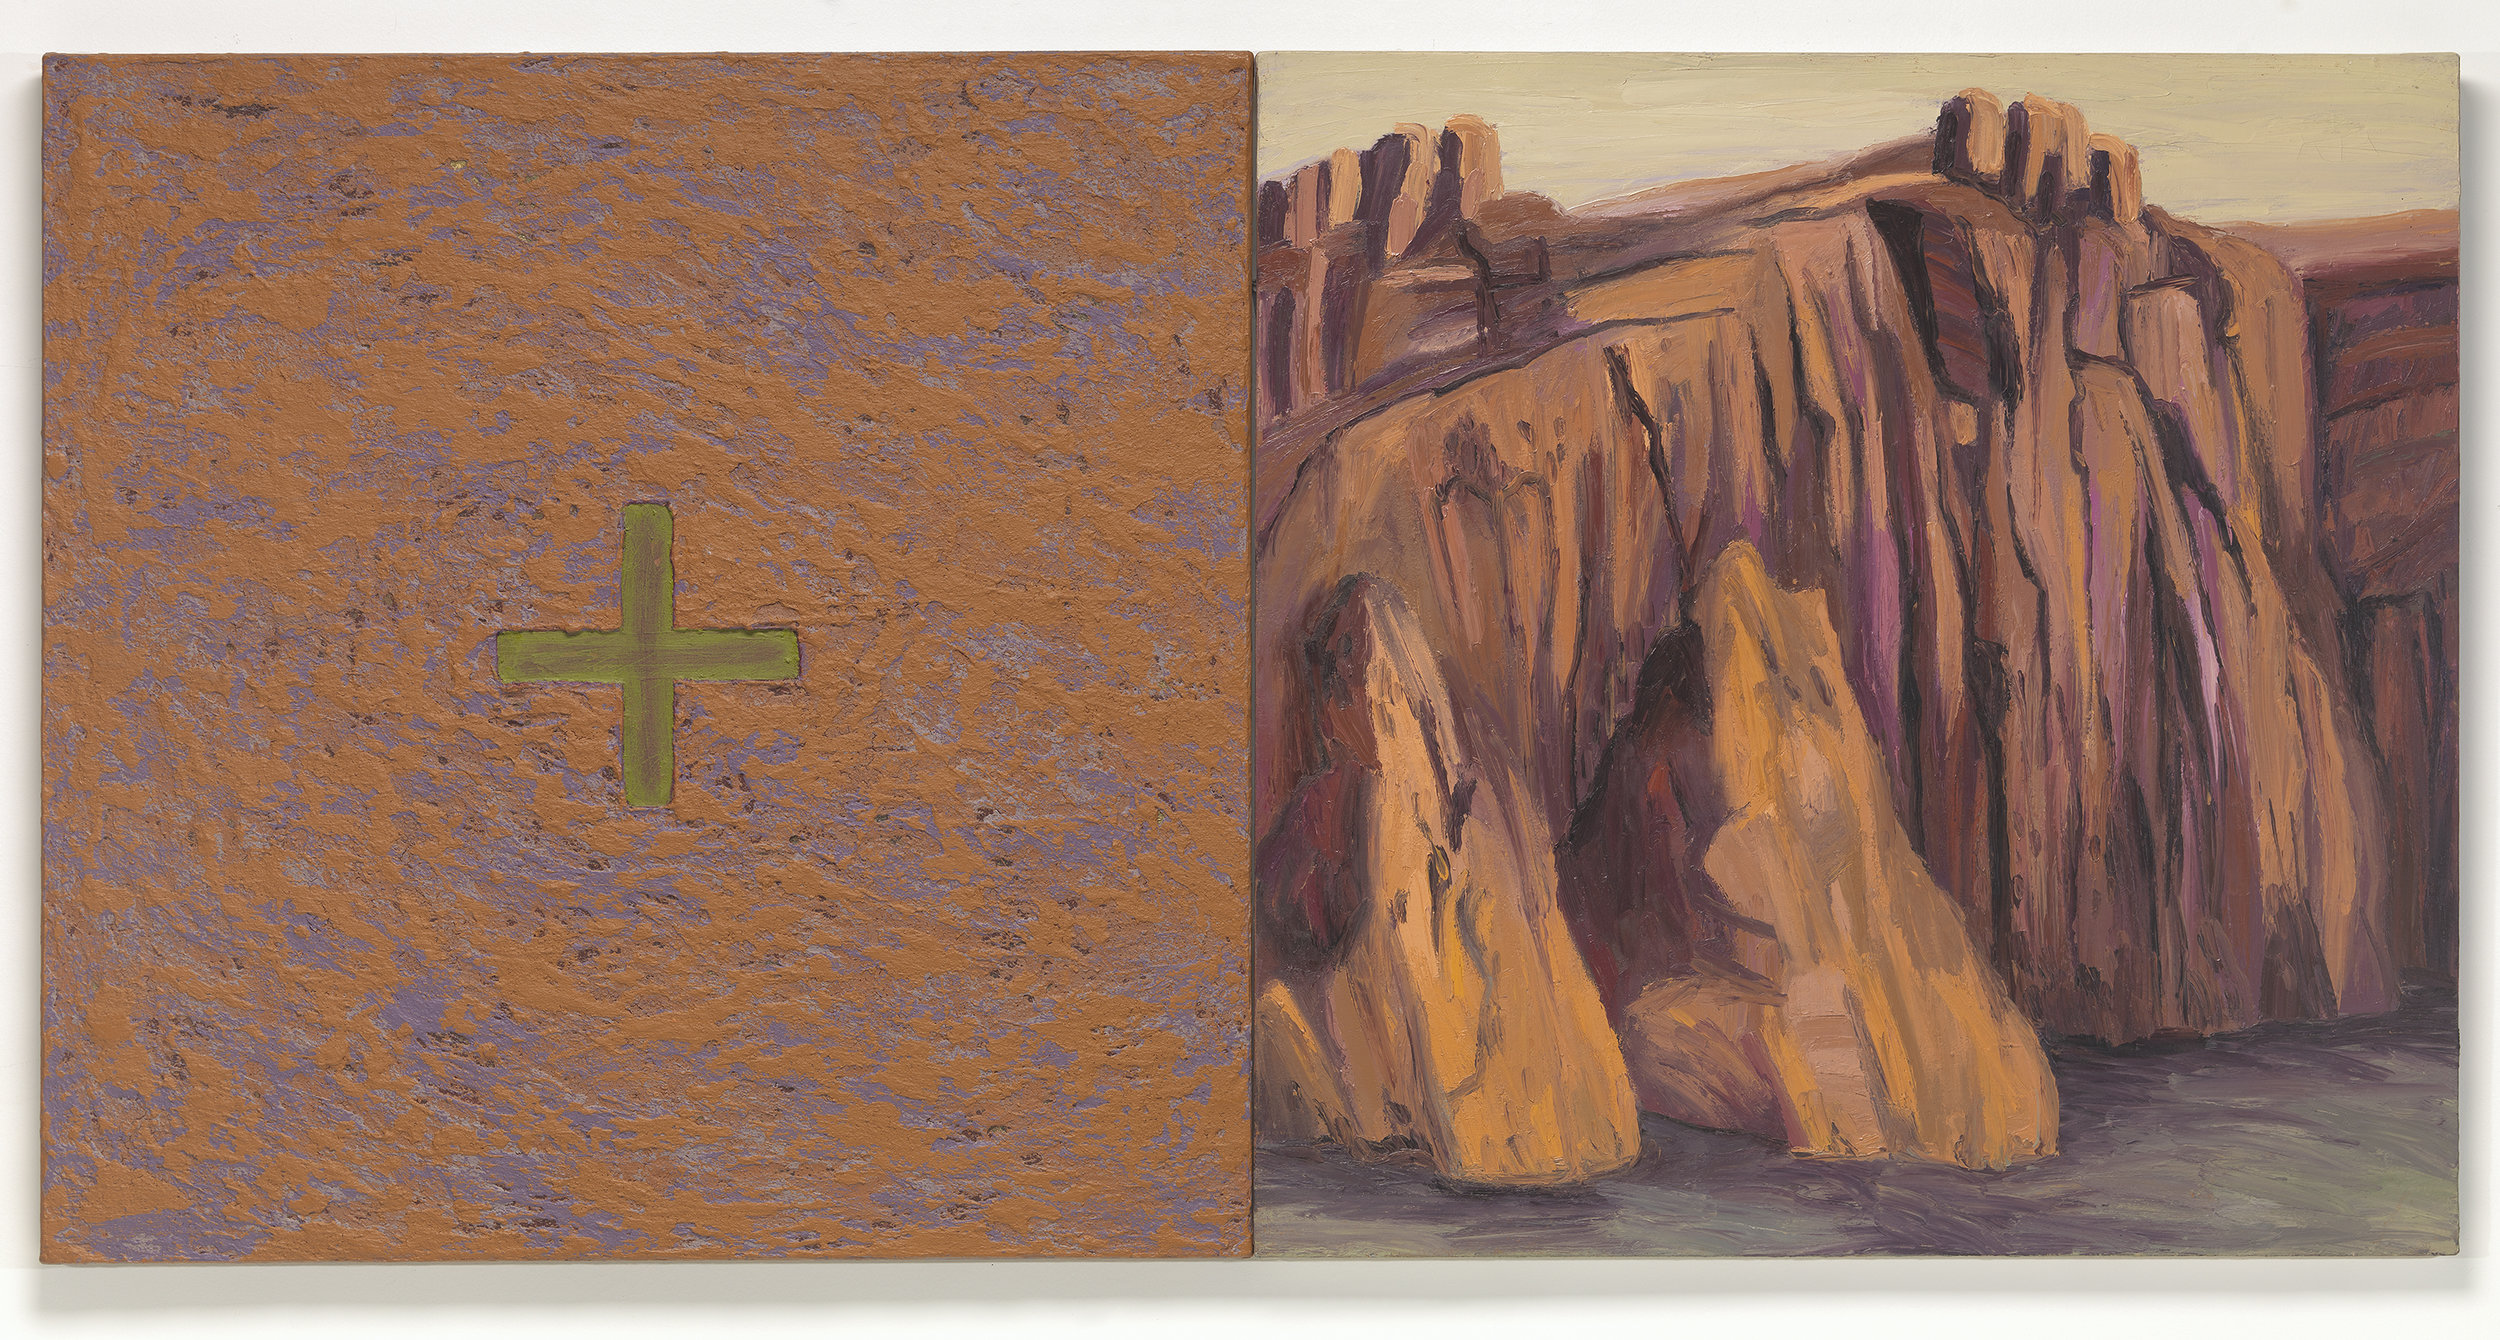 Kay WalkingStick  (Cherokee, born 1935),  Four Directions/Stillness , 1994  acrylic, wax, and oil on canvas  Virginia Museum of Fine Arts; Arthur and Margaret Glasgow Endowment. Photo by Travis Fullerton © Virginia Museum of Fine Arts